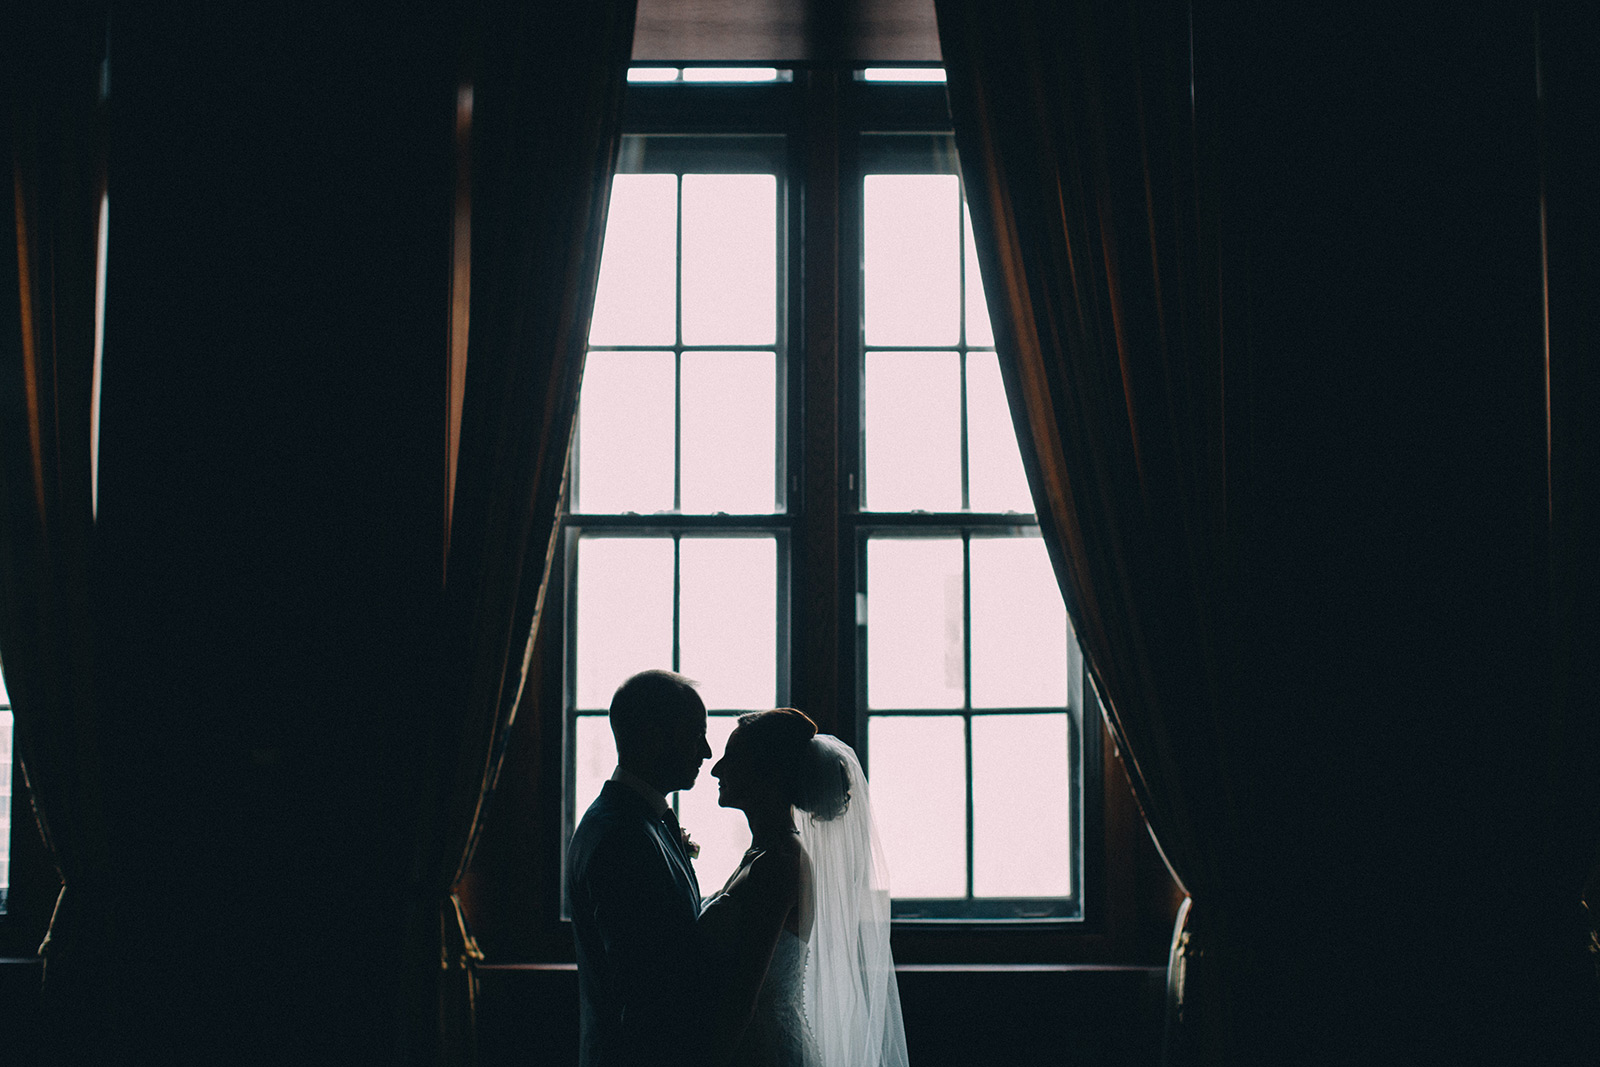 One-King-West-Toronto-wedding-photography_Sam-Wong-of-Visual-Cravings_KnR-23